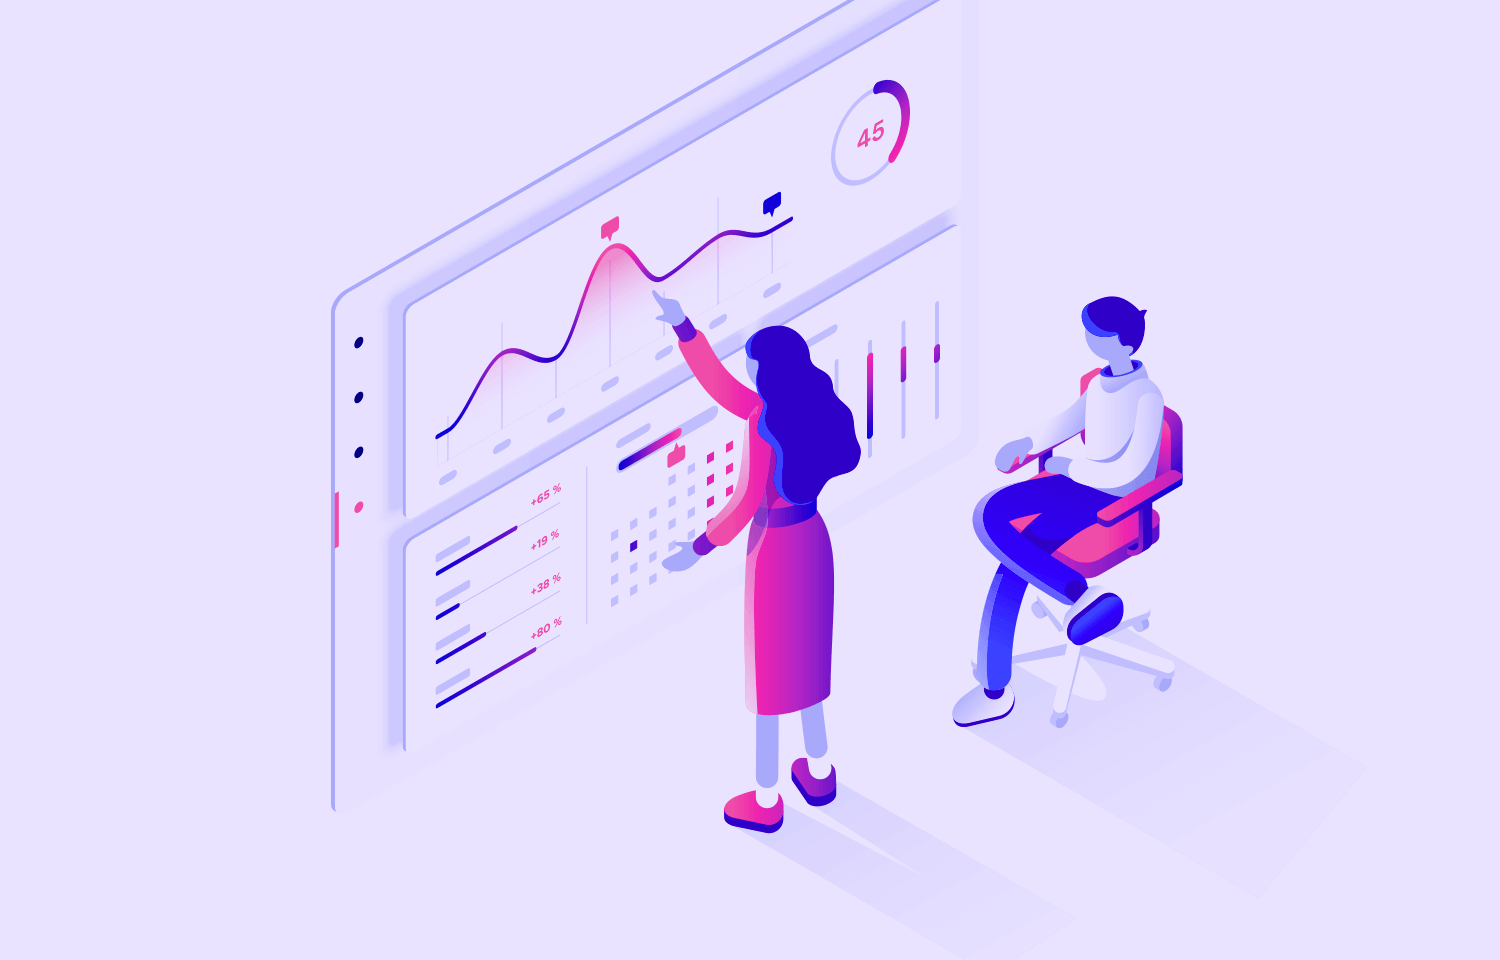 6 best practices for dashboard design - Justinmind